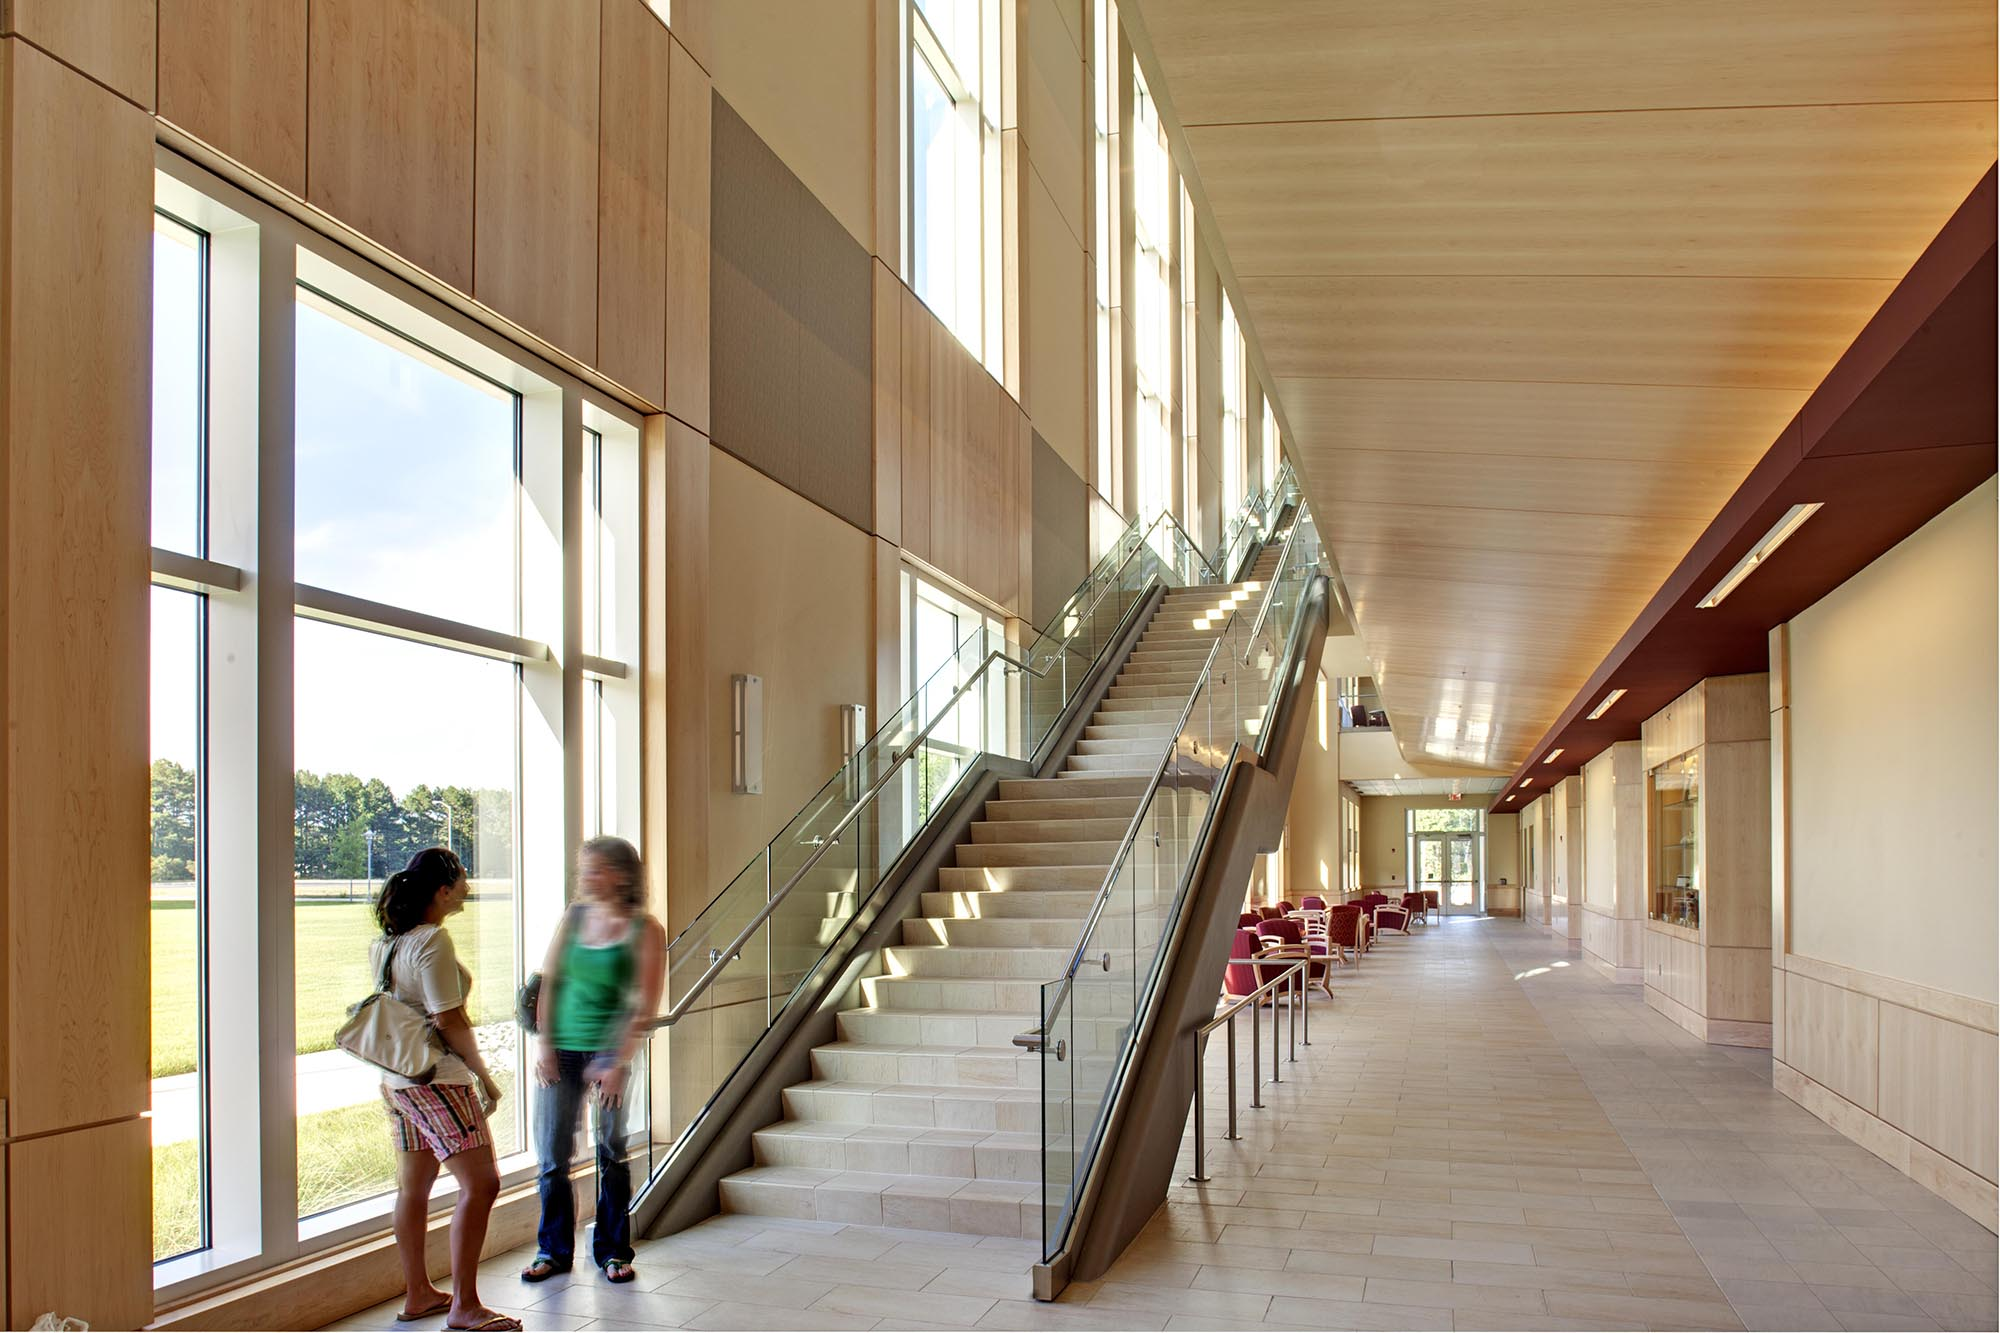 Allied Health Building Wor Wic Community College Jmt Architecture